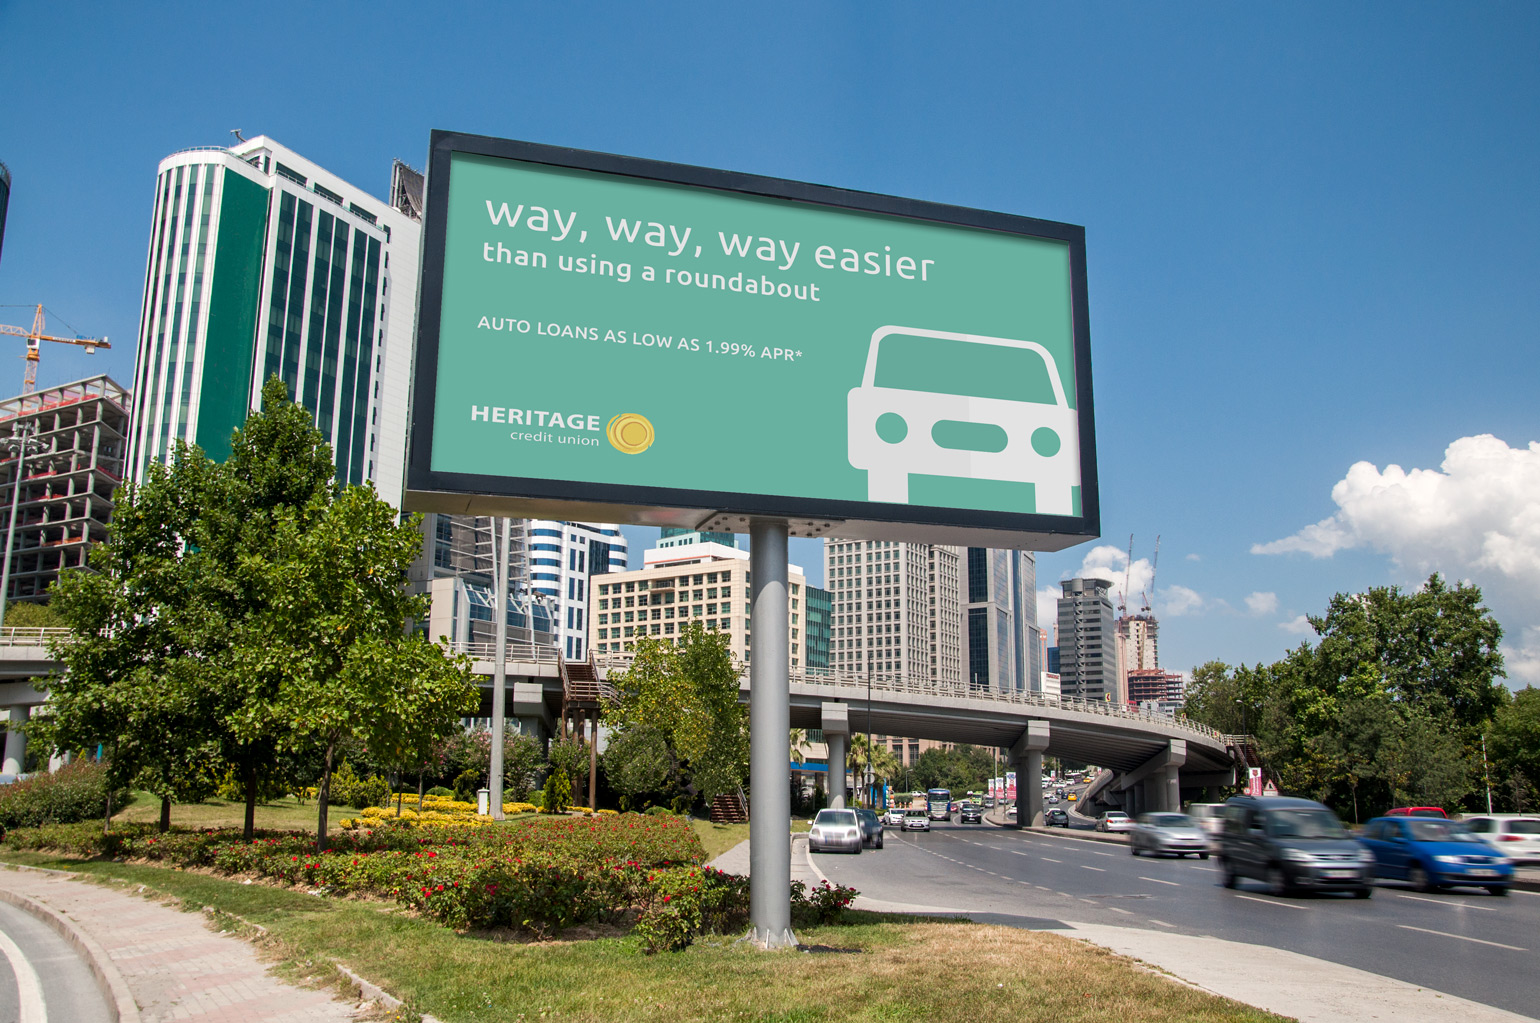 Heritage Credit Union's sign design displayed on a billboard in a city